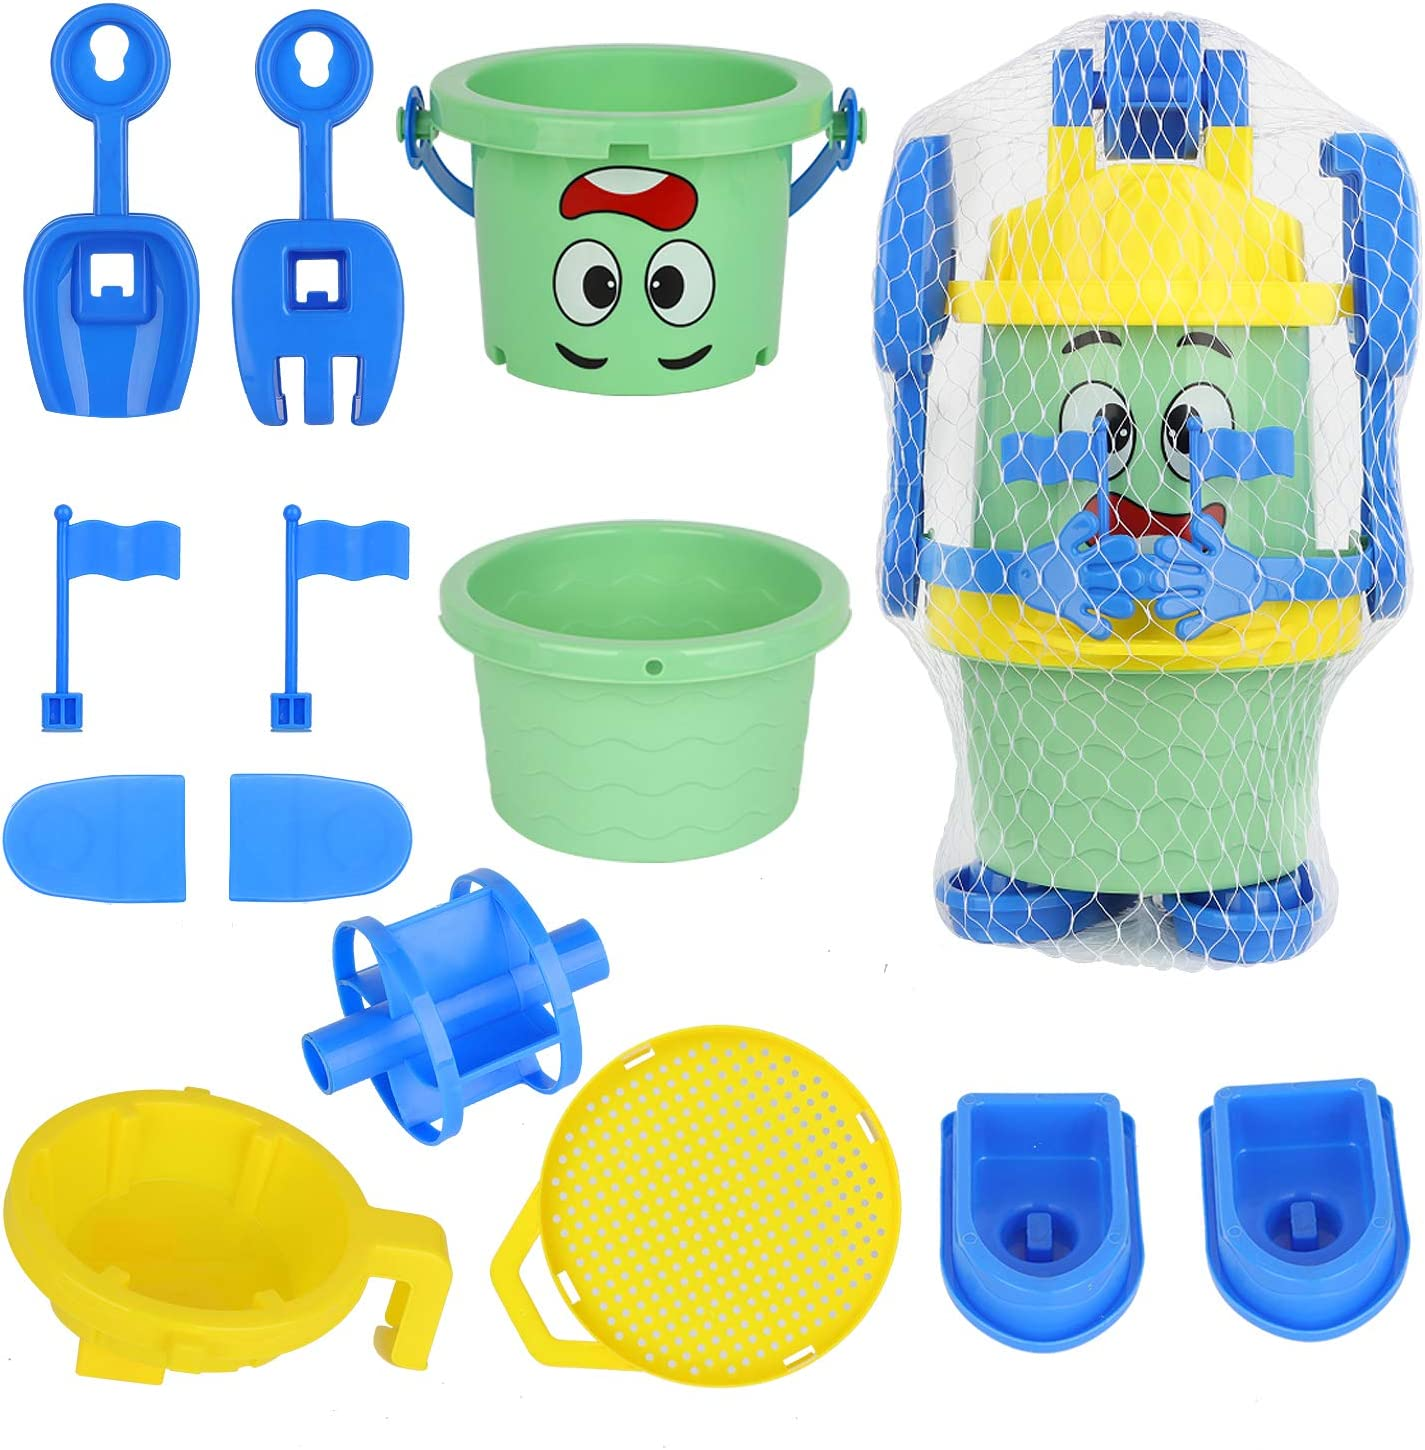 Qing Zhu Business /& Trade Robot Beach Toys for Kids,Beach Toy Set for Kids 3-10 Rakes Bucket Beach Pail Set with Molds Bucket and Plastic Pool Toy Boat,Shovels Molds for Kids .